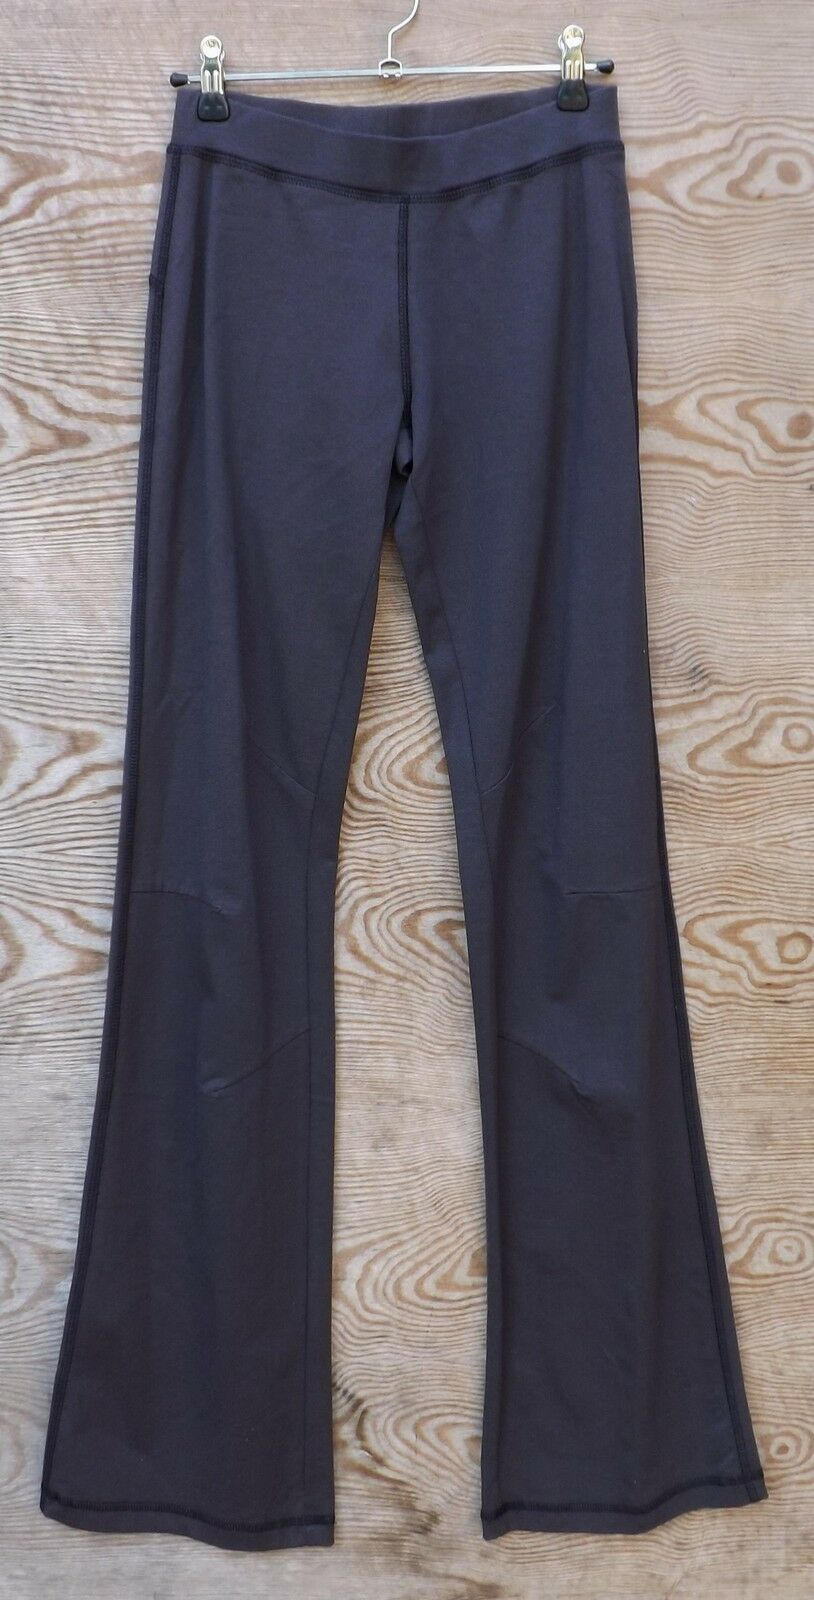 Lost Arrow Women's THURMAN Pants, Elastic Trousers for Ladies